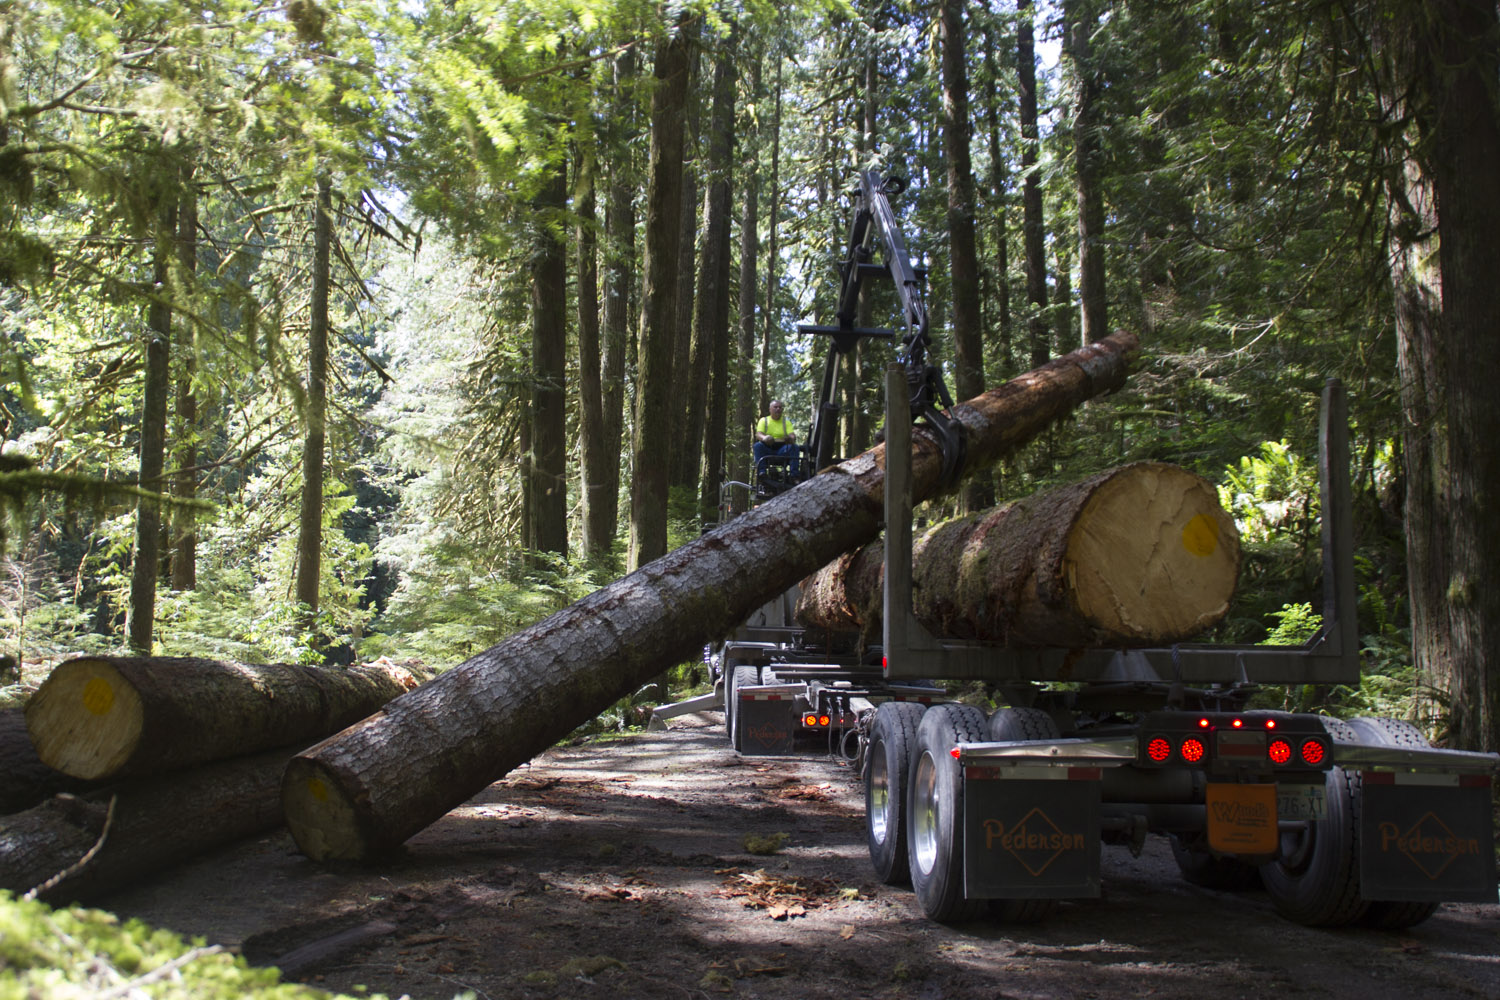 Tribal partnership with forest service expands restoration projects